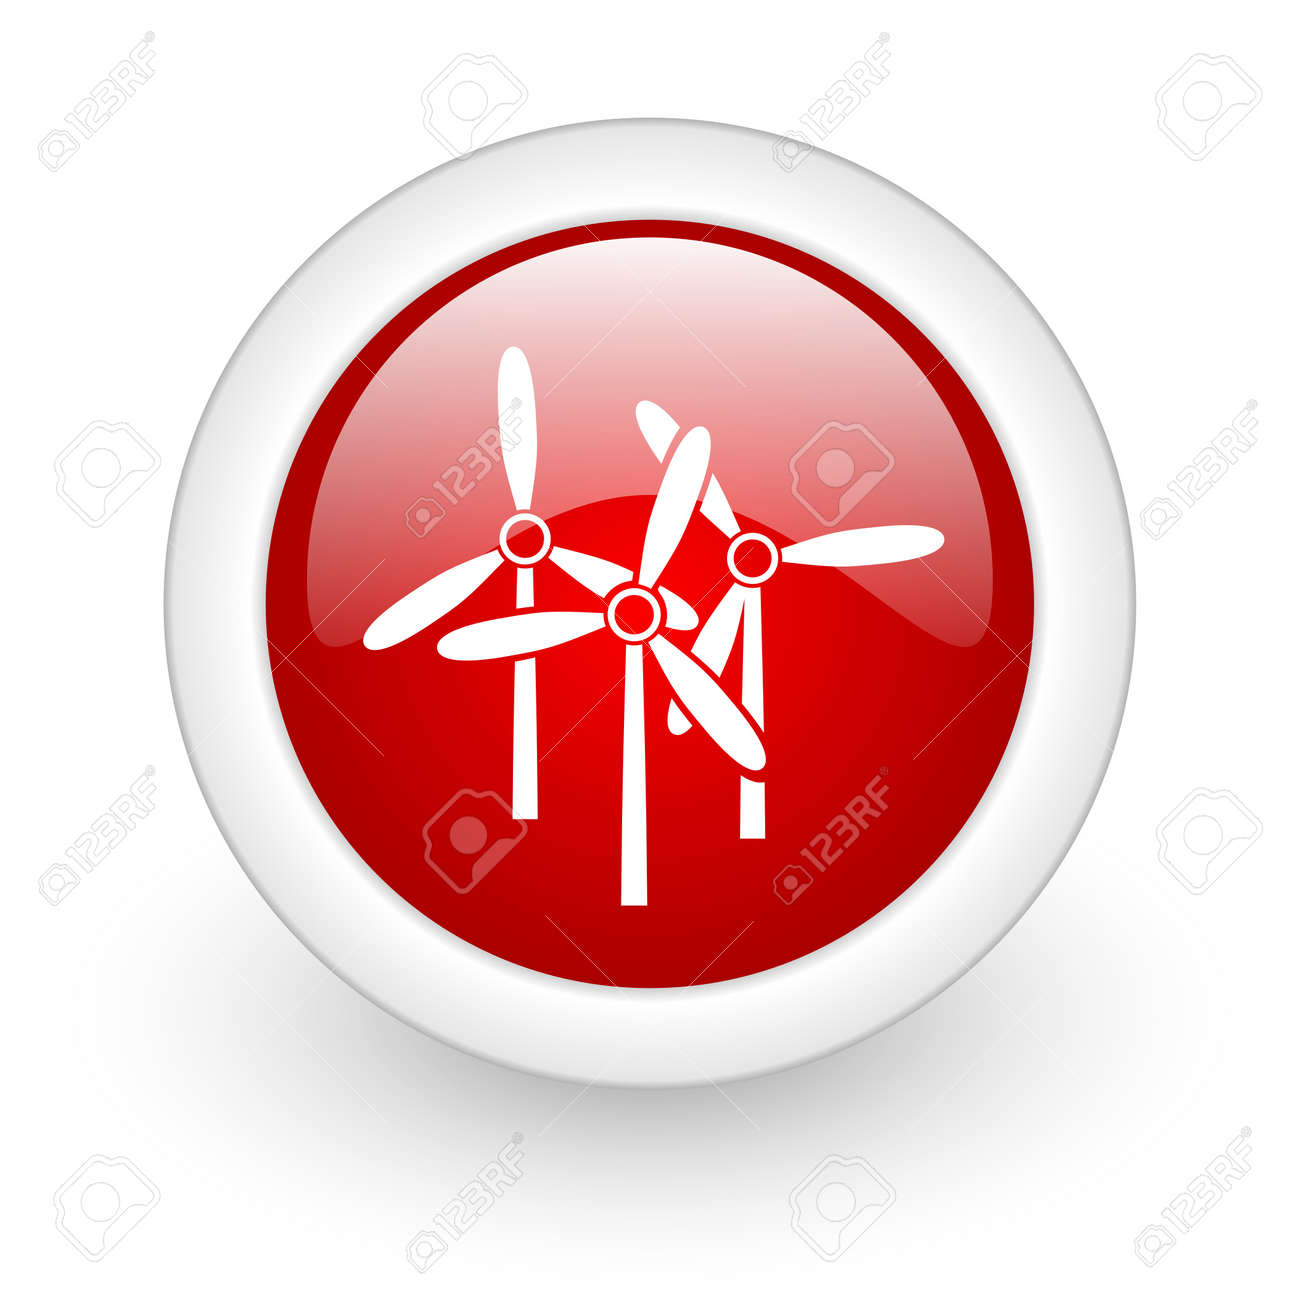 windmill red circle glossy web icon on white background Stock Photo - 17980389